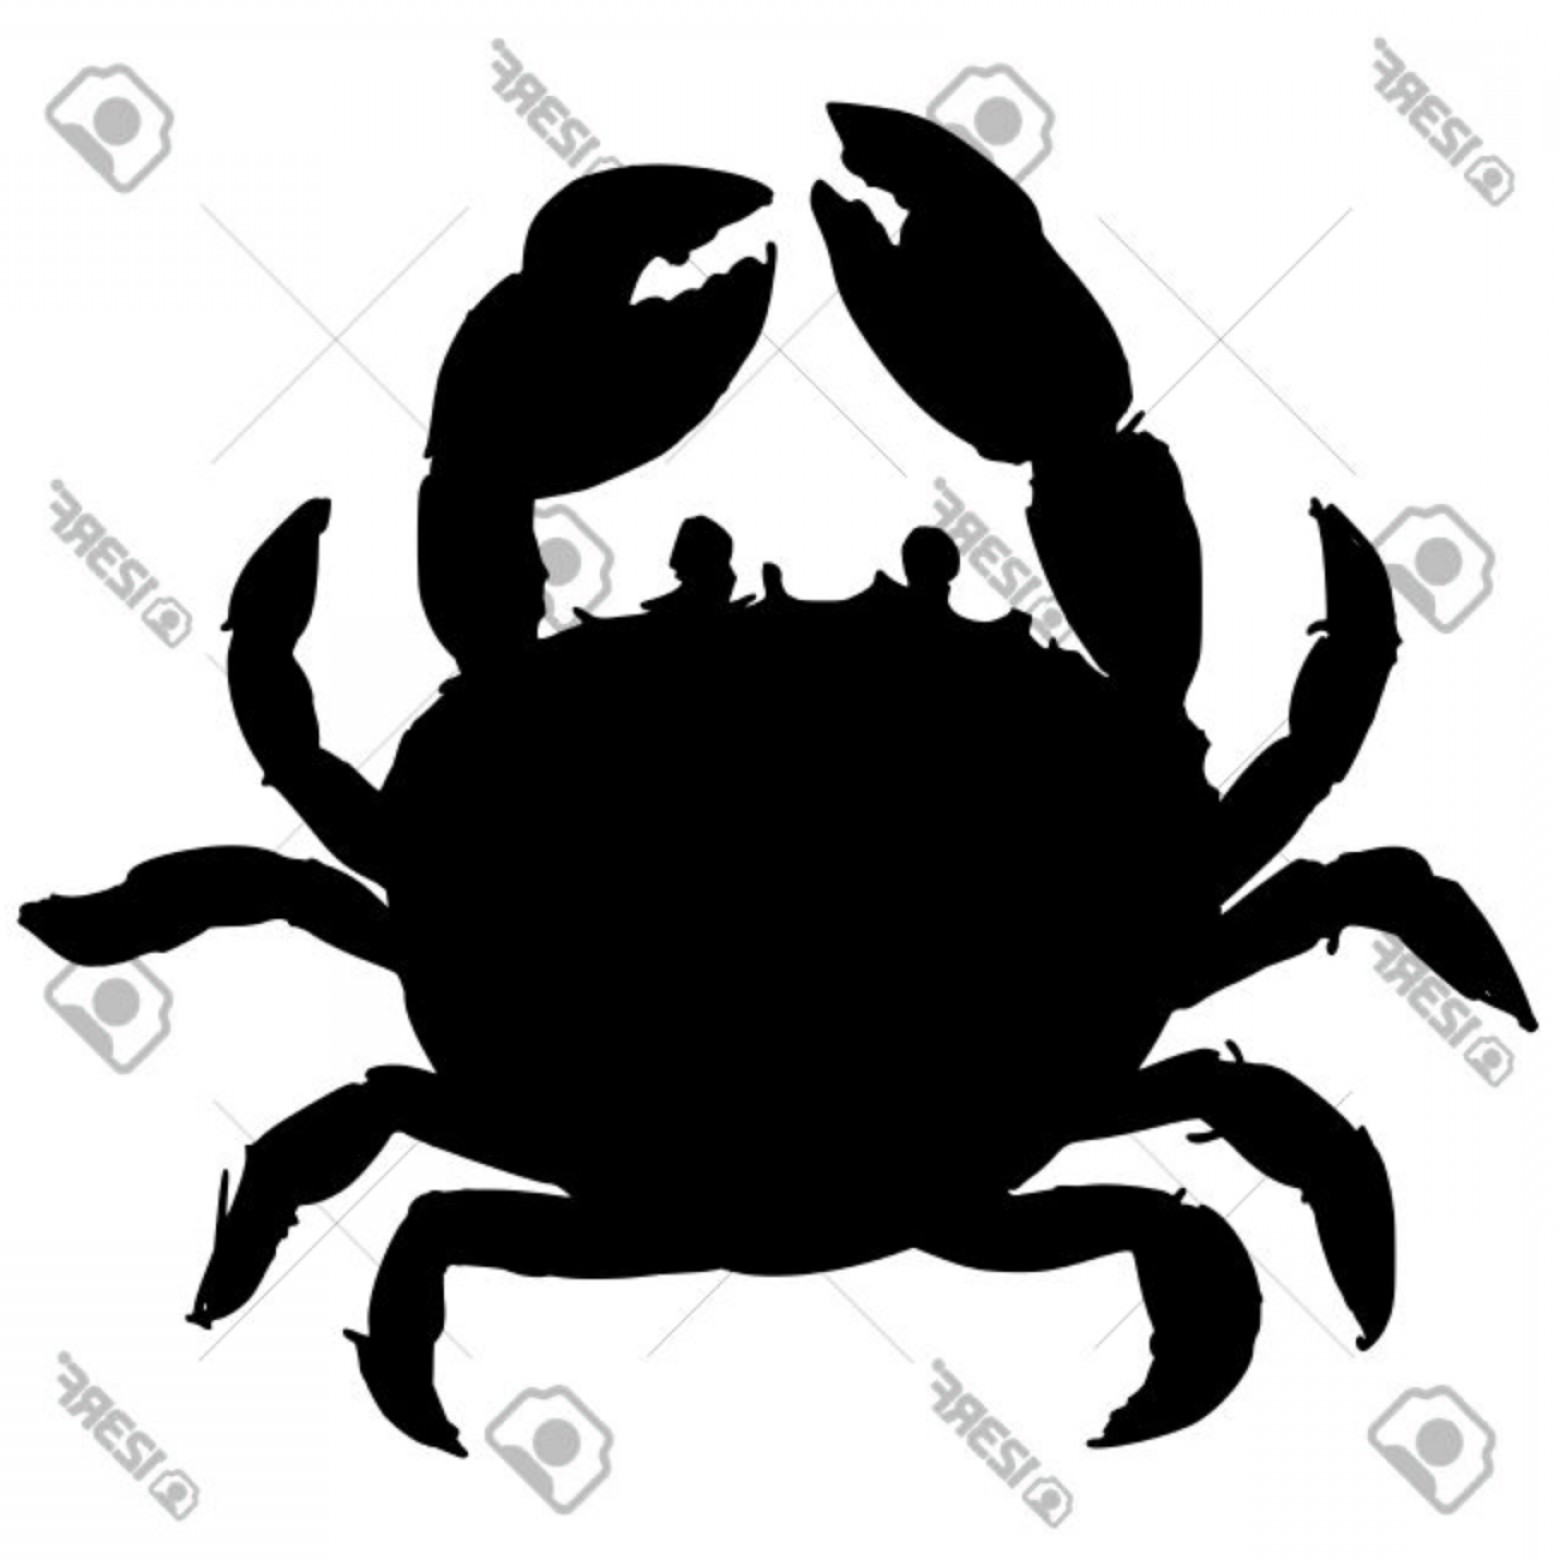 Crab Vector Black: Photostock Vector Black Silhouette Of Crab